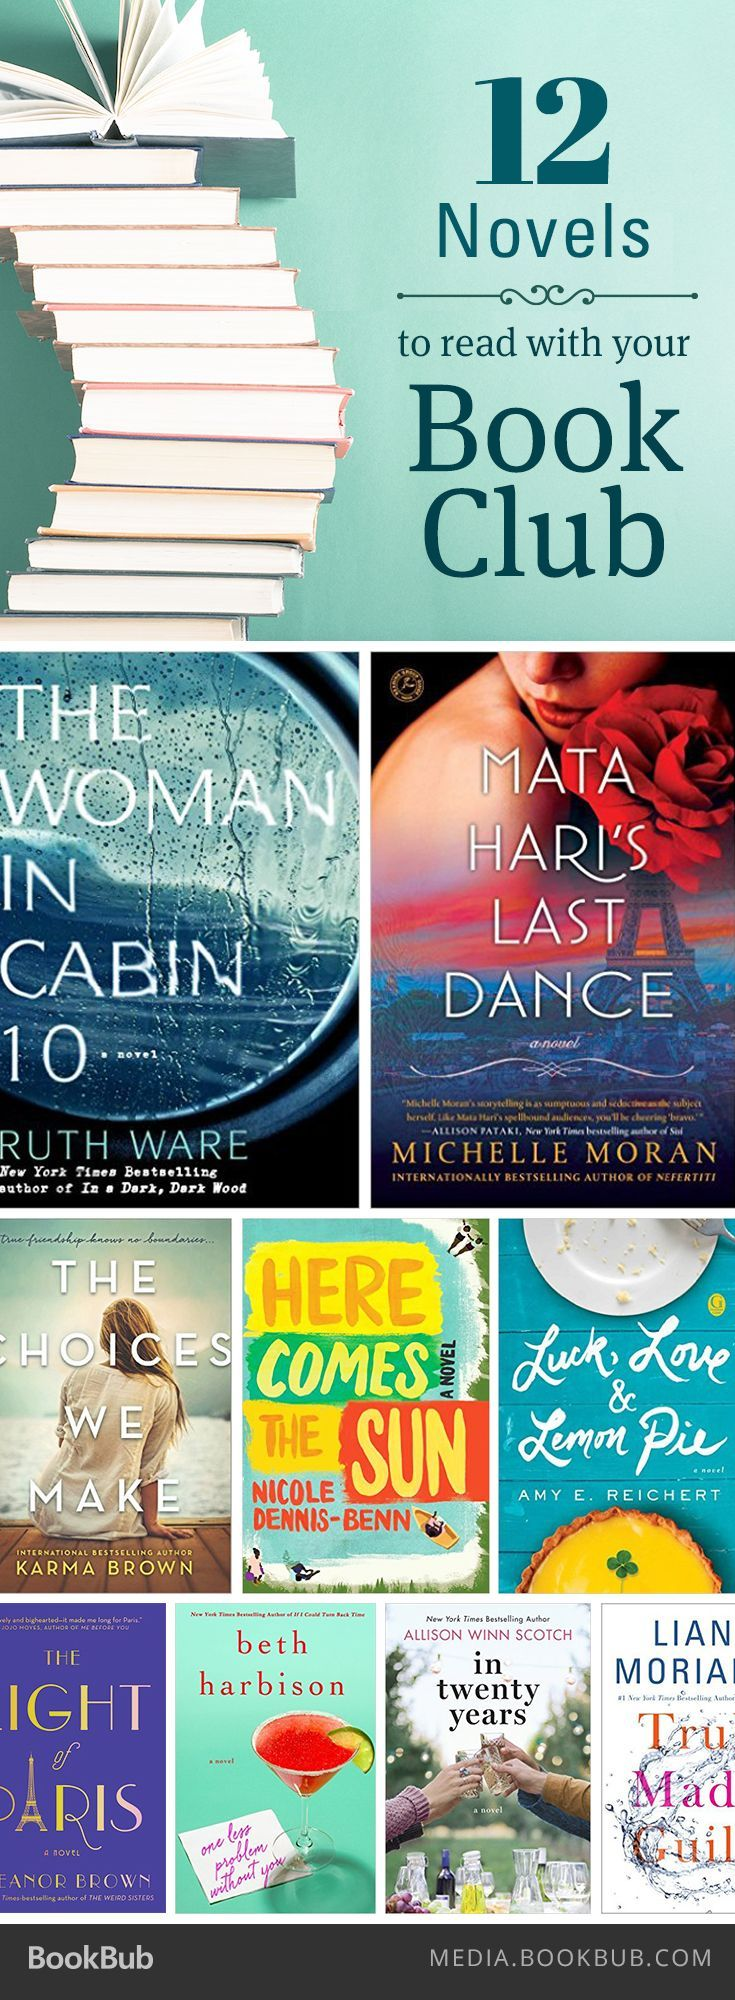 12 novels to read with your book club, including Liane Moriarty's Truly Madly Guilty. | best book club books | bee book club ideas